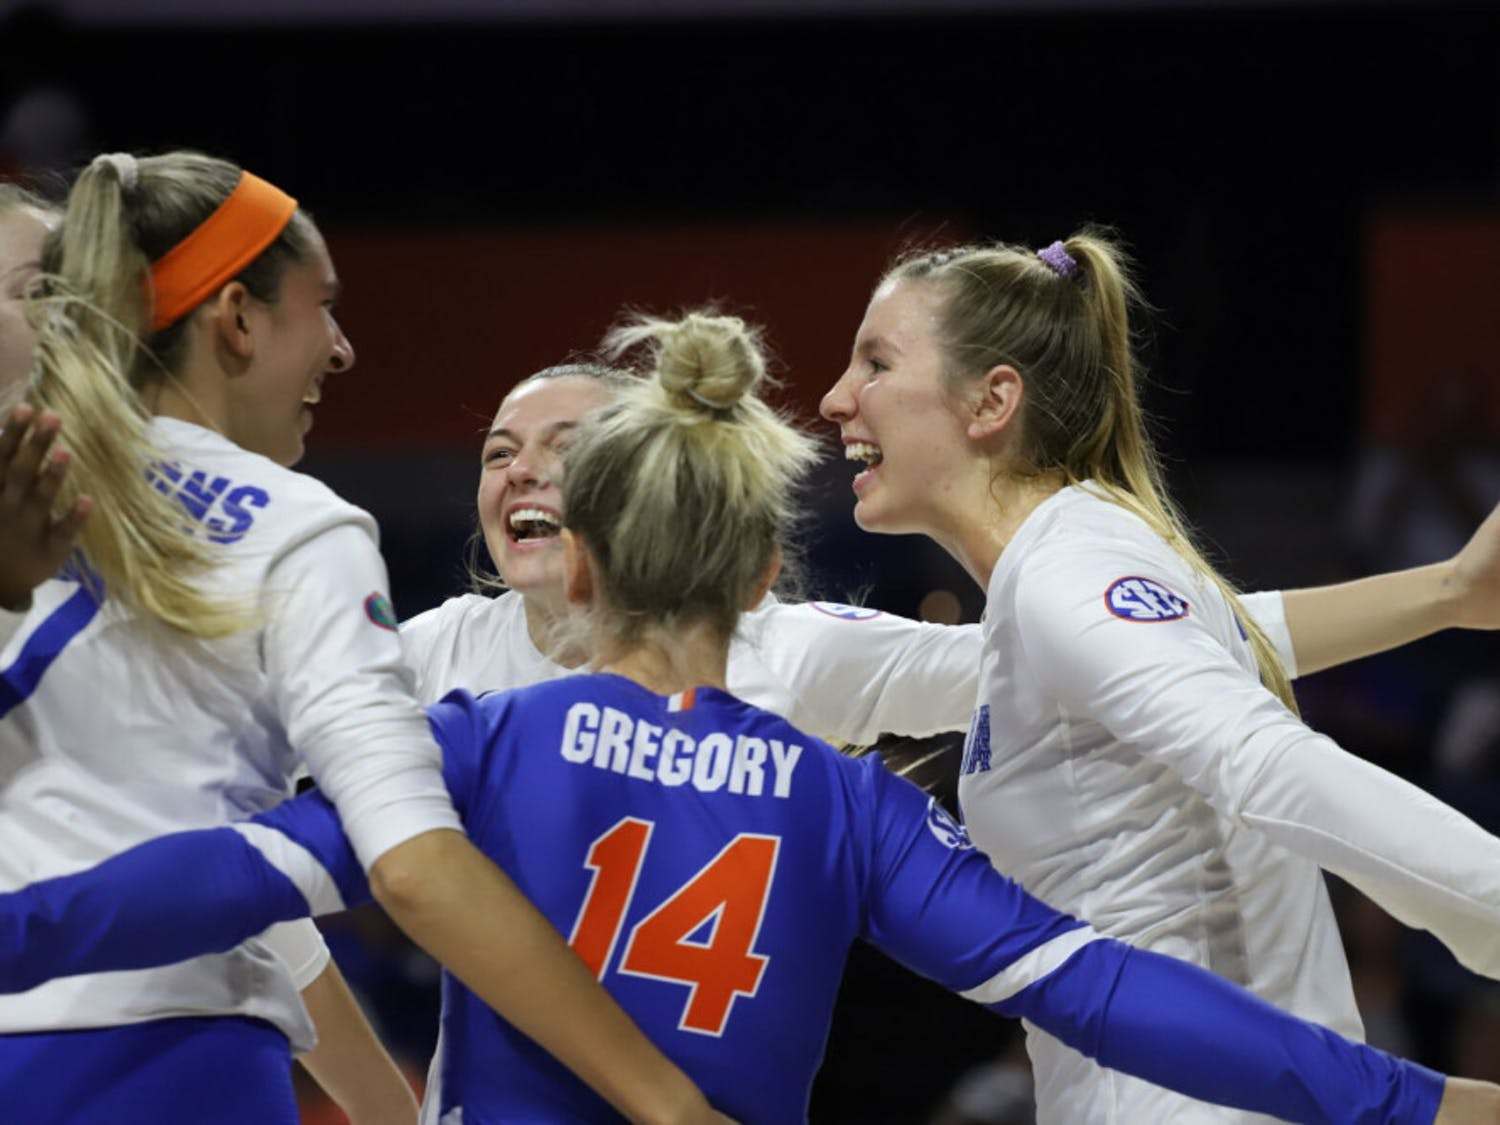 The Gators celebrate a successful play at home against Texas A&M last year. This season, Florida extended its winning streak to eight games after defeating Arkansas Friday.